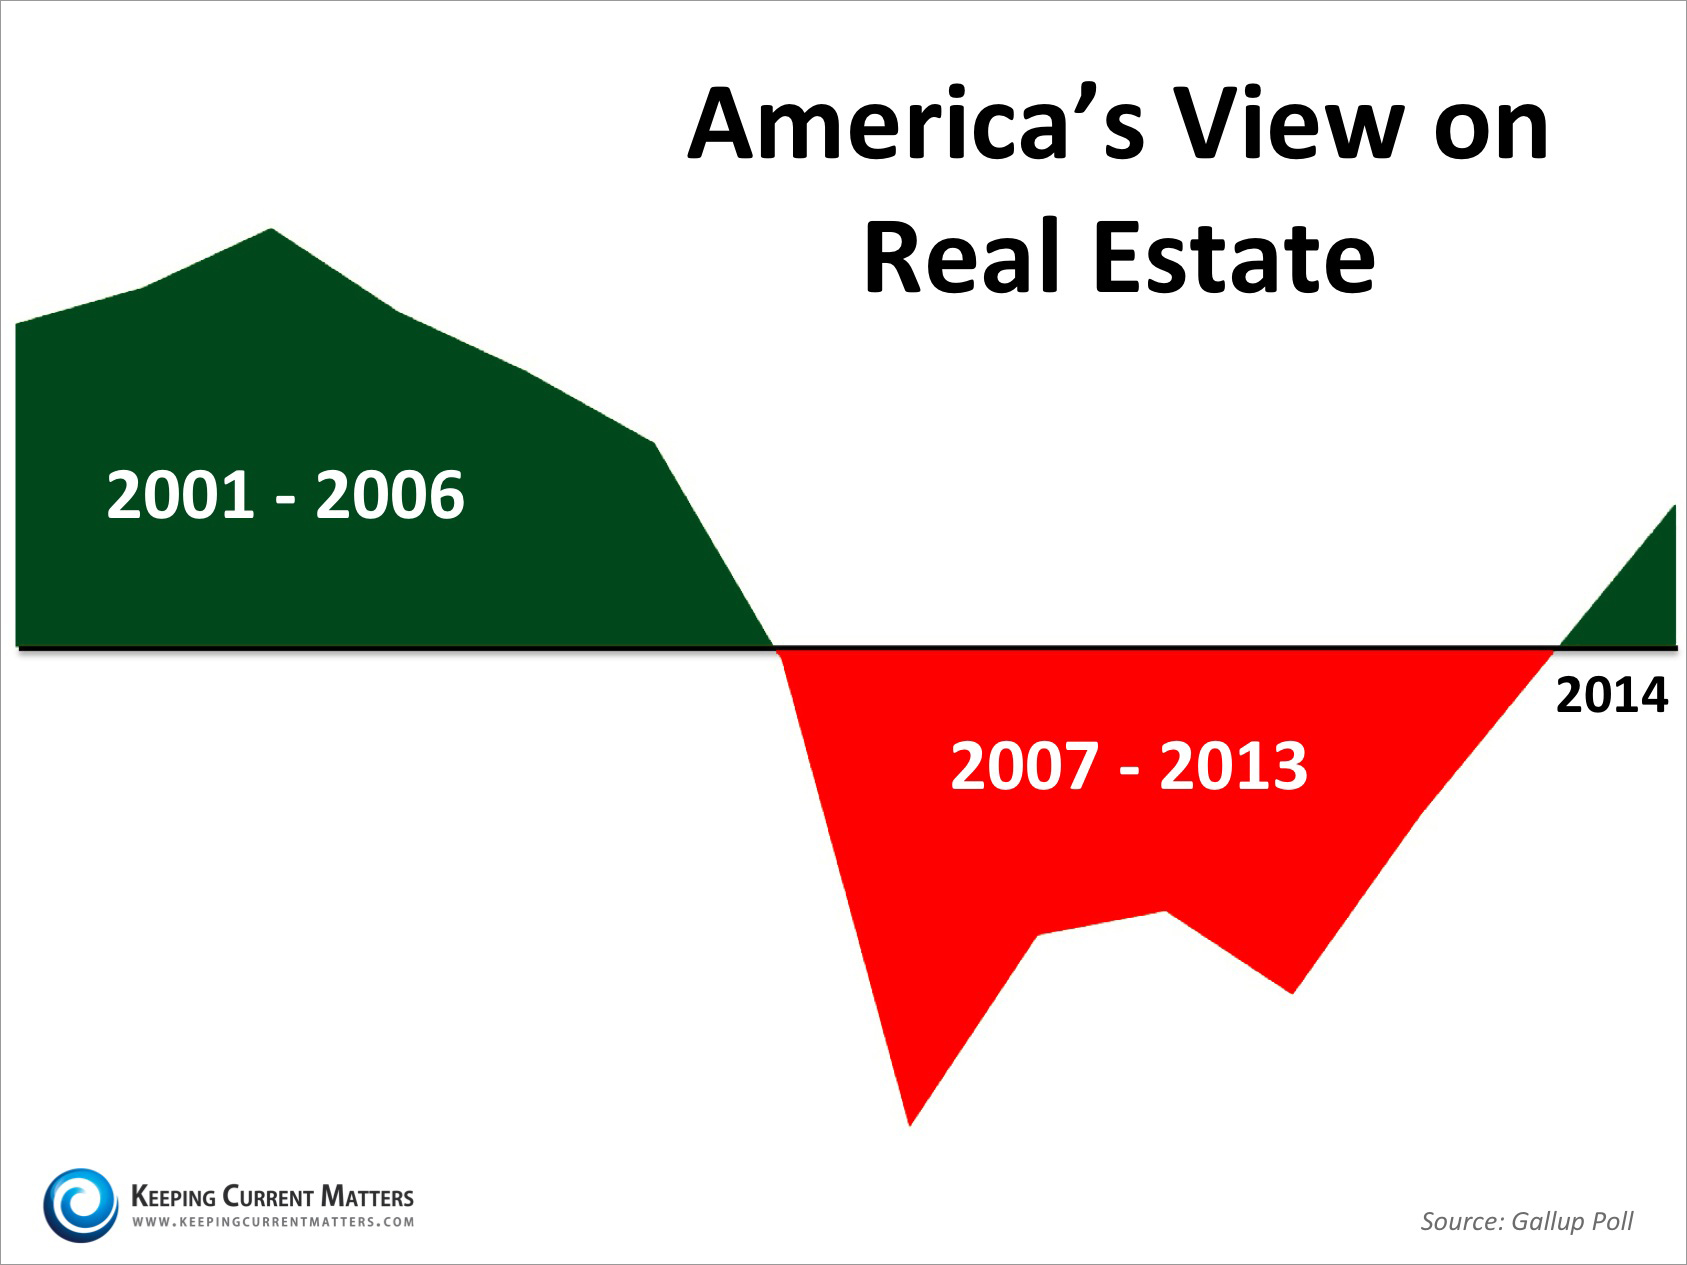 America's View on Real Estate   Keeping Current Matters